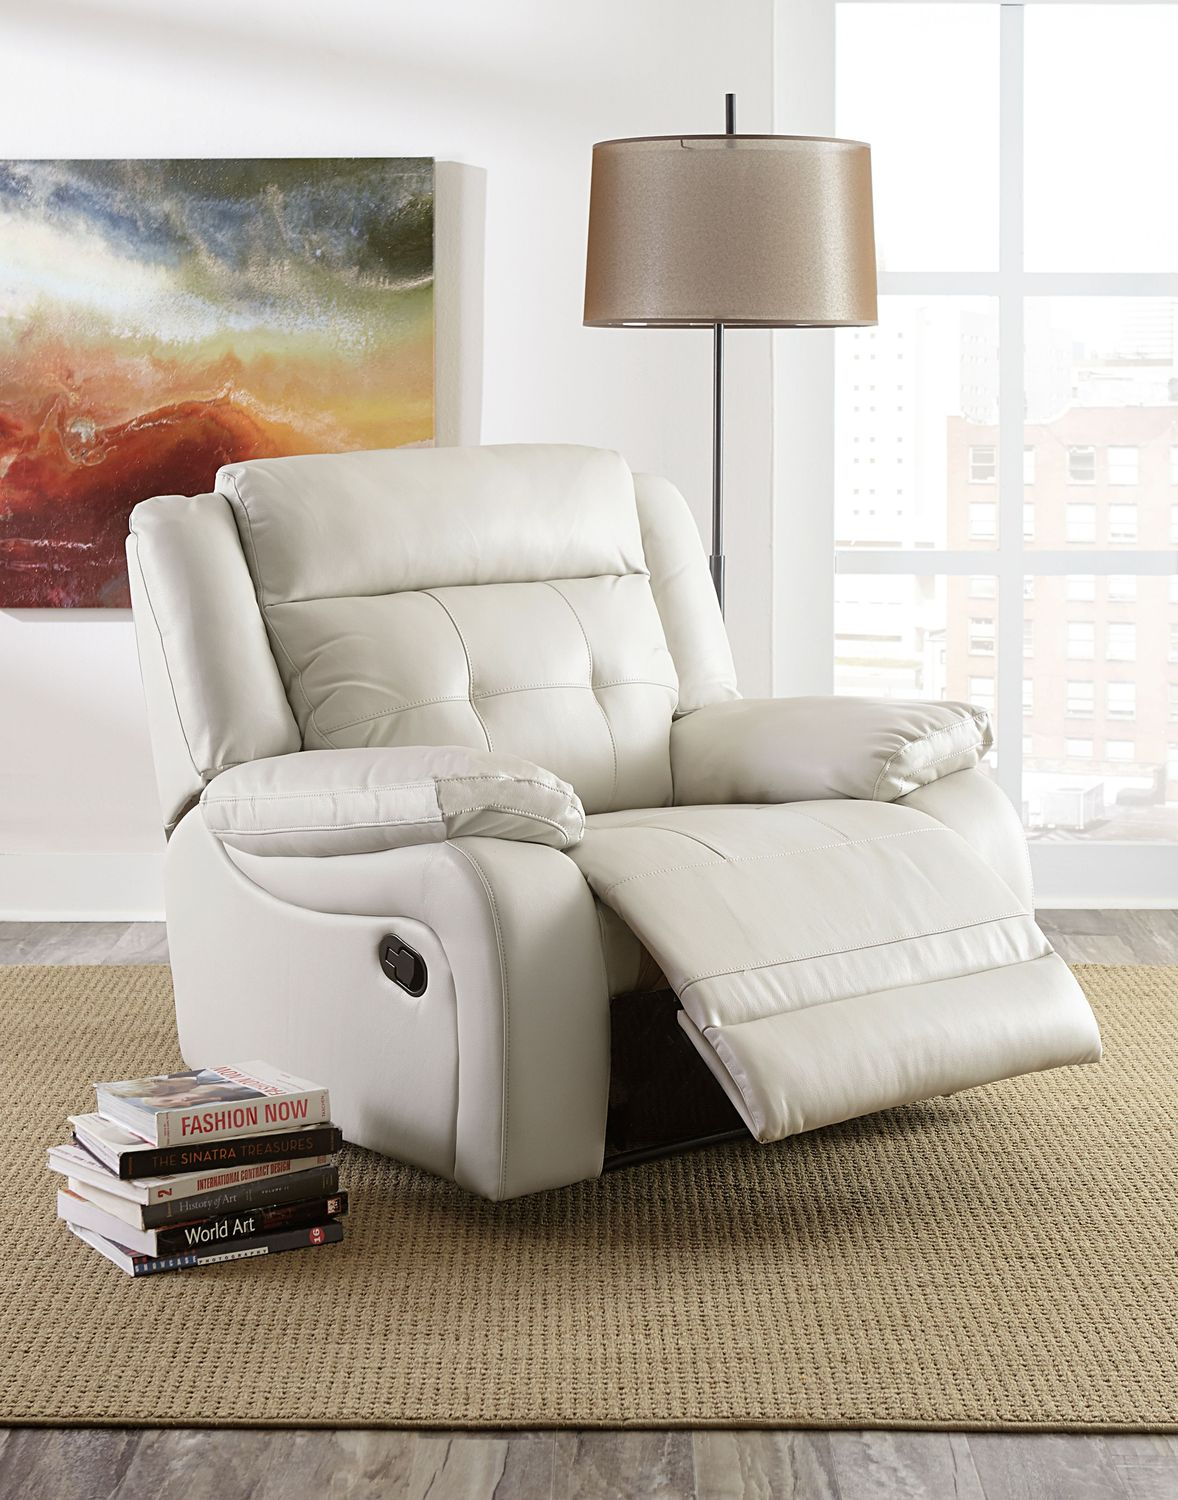 Recliners rockers levin furniture for Levin furniture living room chairs